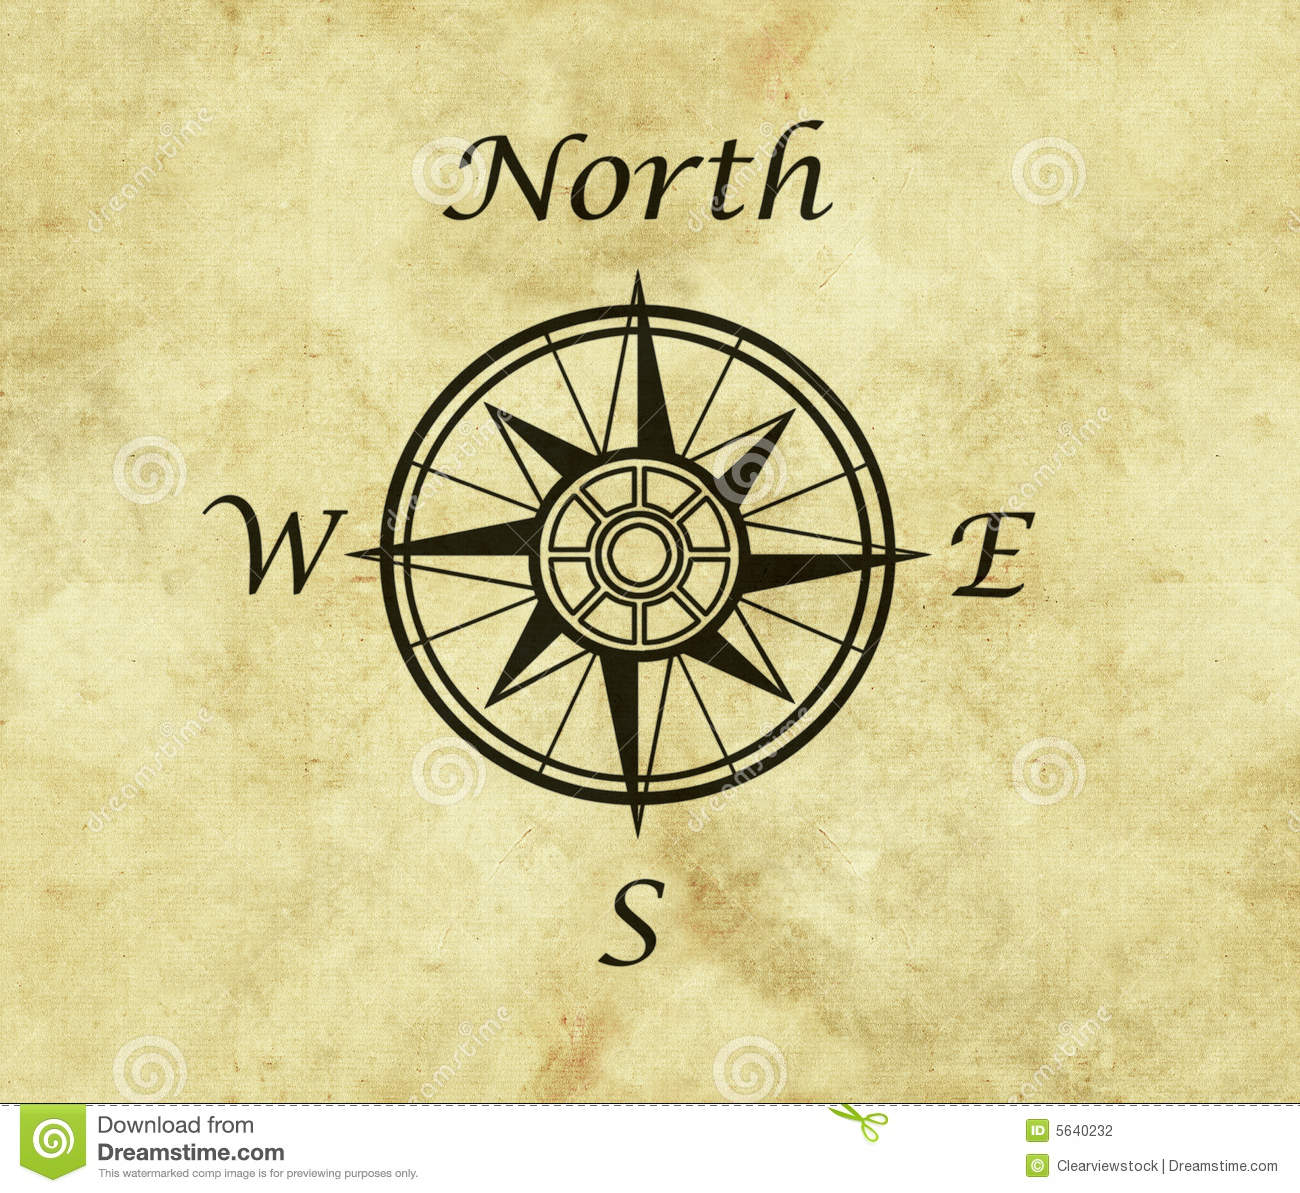 Compass On Map North compass map arrow stock illustration. Illustration of north  Compass On Map